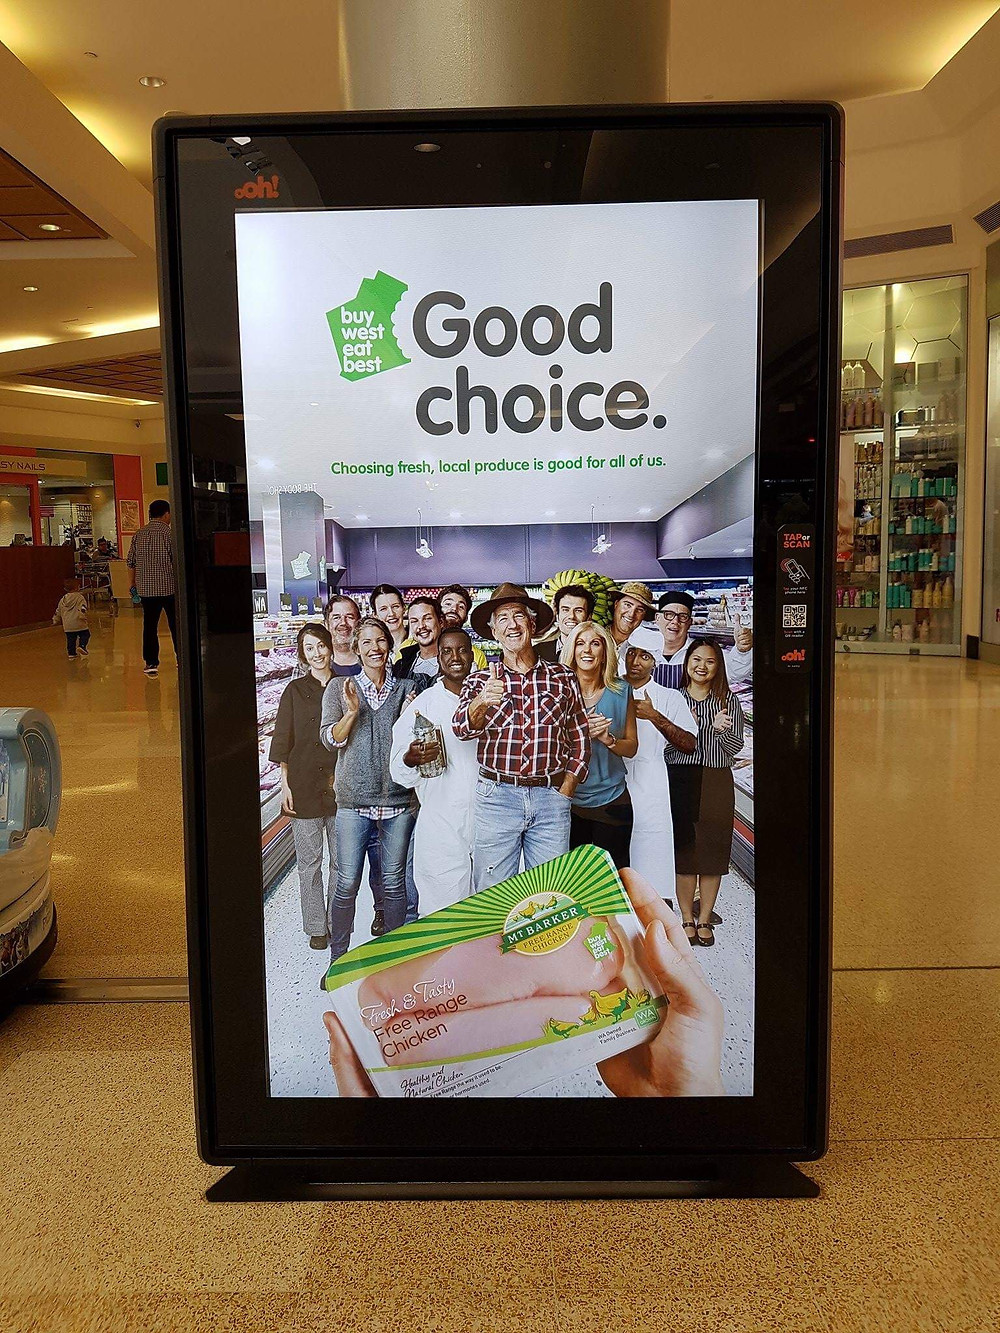 A digital LED retail screen Buy West Eat Best Good Choice ad Garden City Shopping Centre Booragoon managed byDepartment of Primary Industries + Regional Development